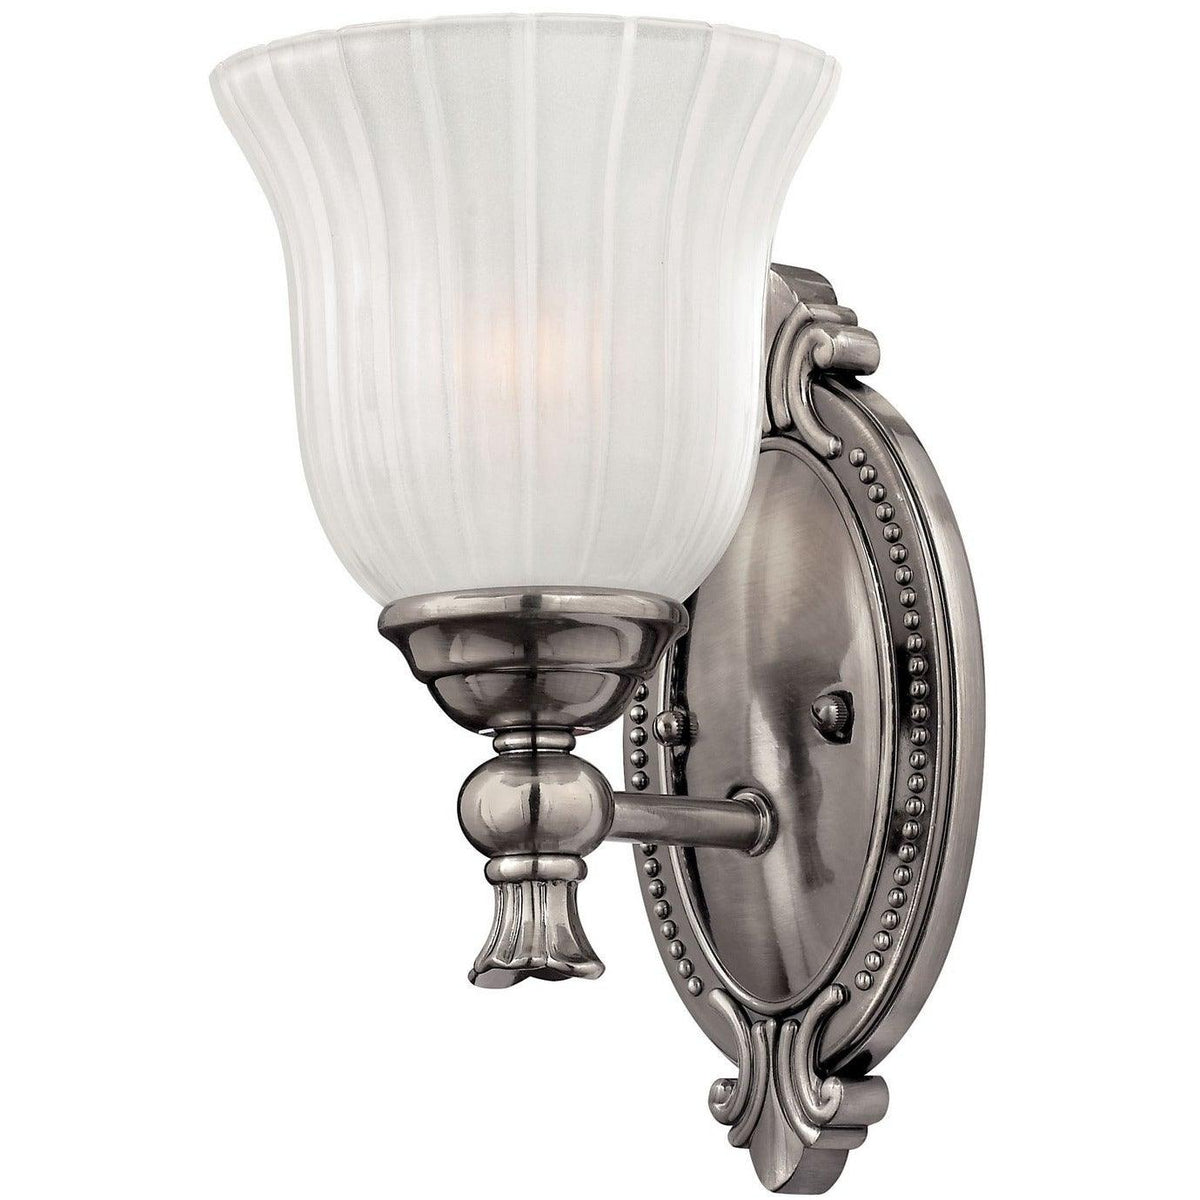 Hinkley Canada - 5580PL - One Light Bath Sconce - Francoise - Polished Antique Nickel